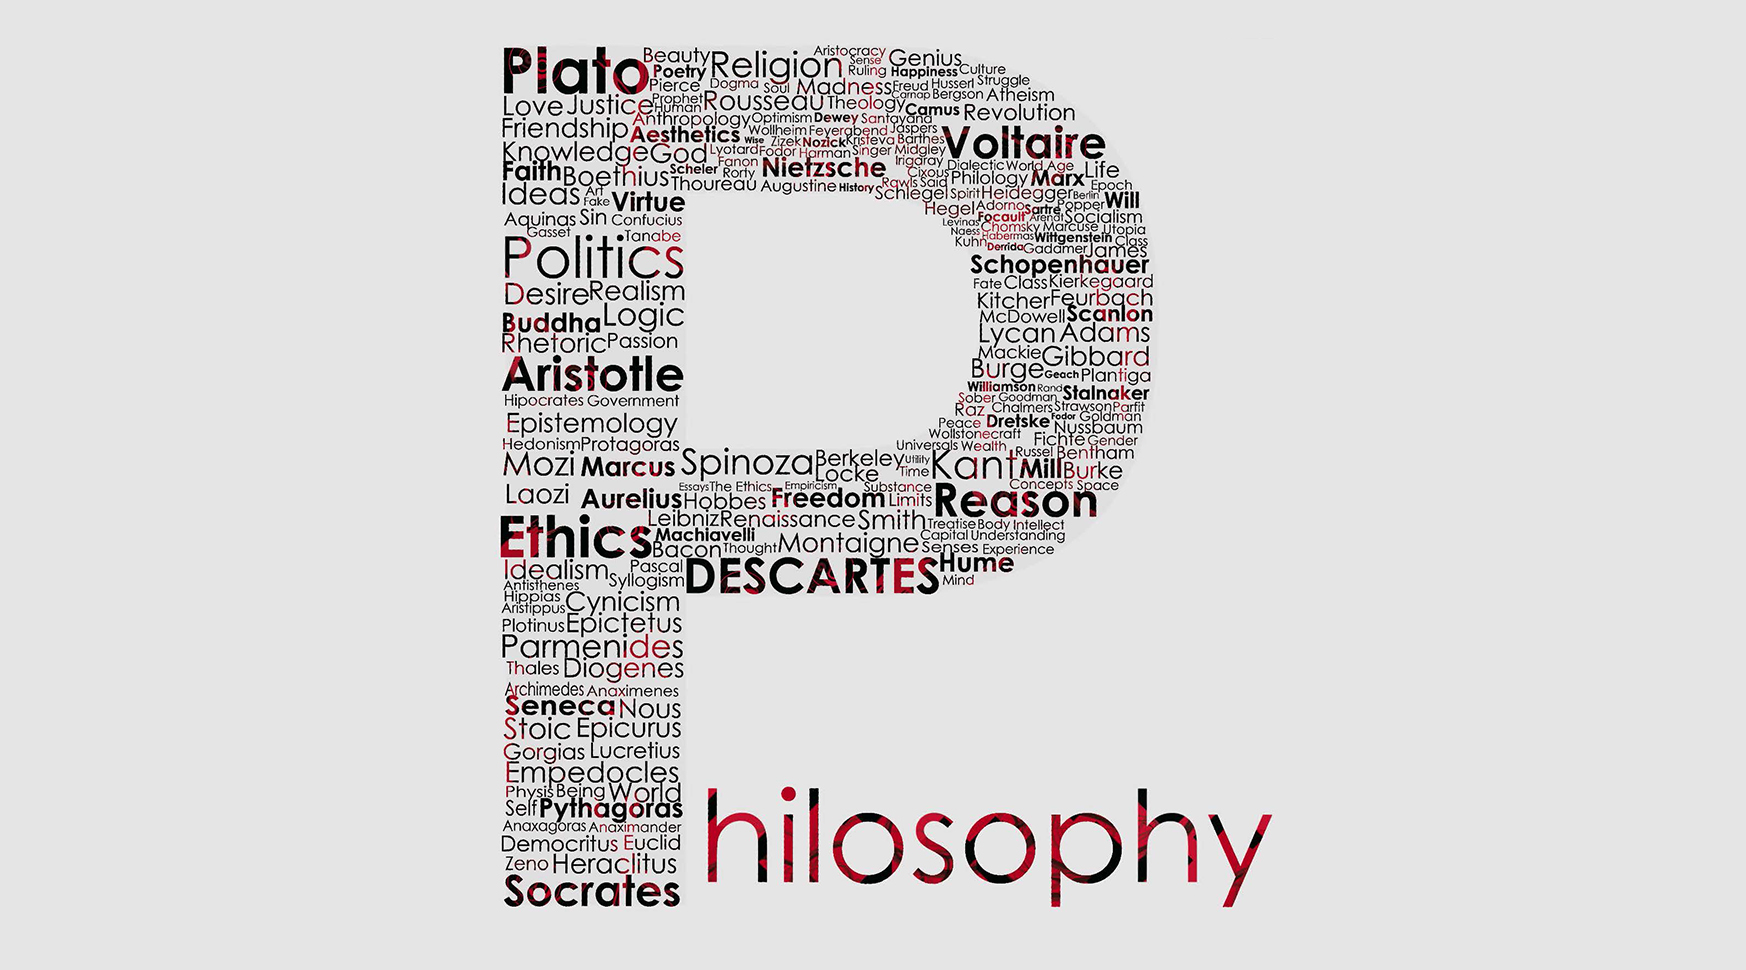 Best Philosophy Book to Learn and Understand the Popular Philosophical Concepts and Ideas